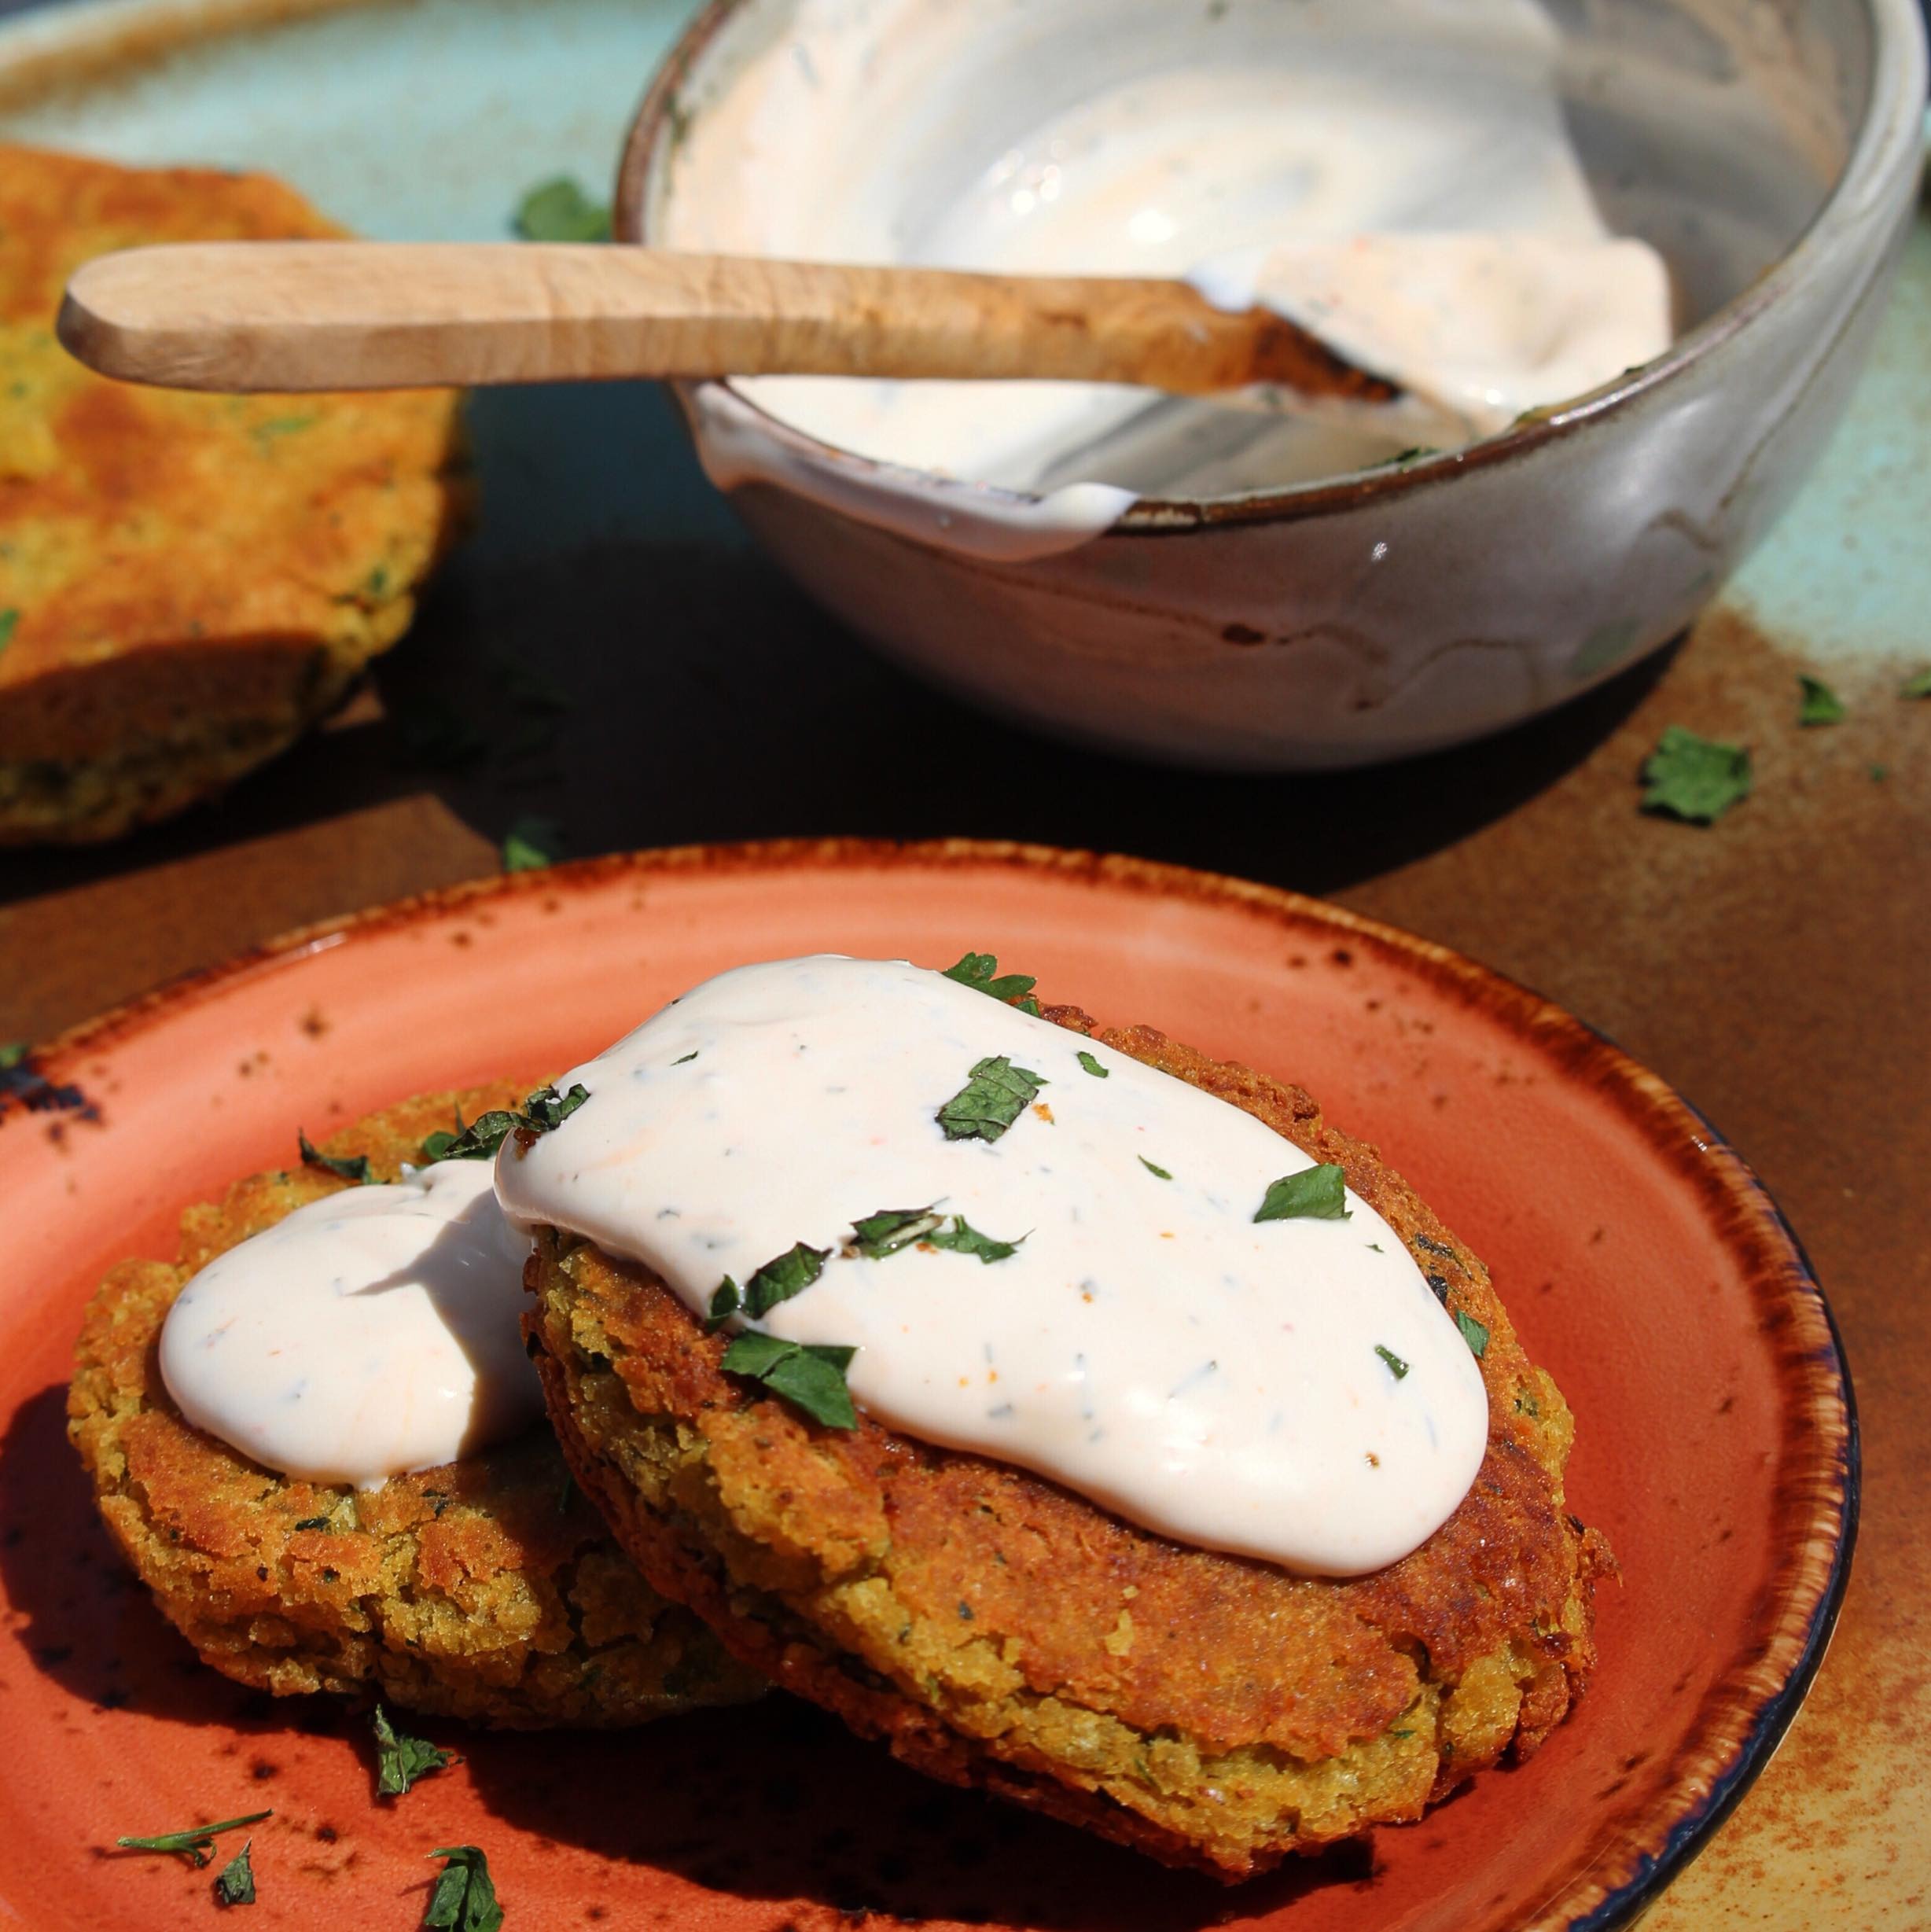 Tzatziki - A Greek Mother's Sauce